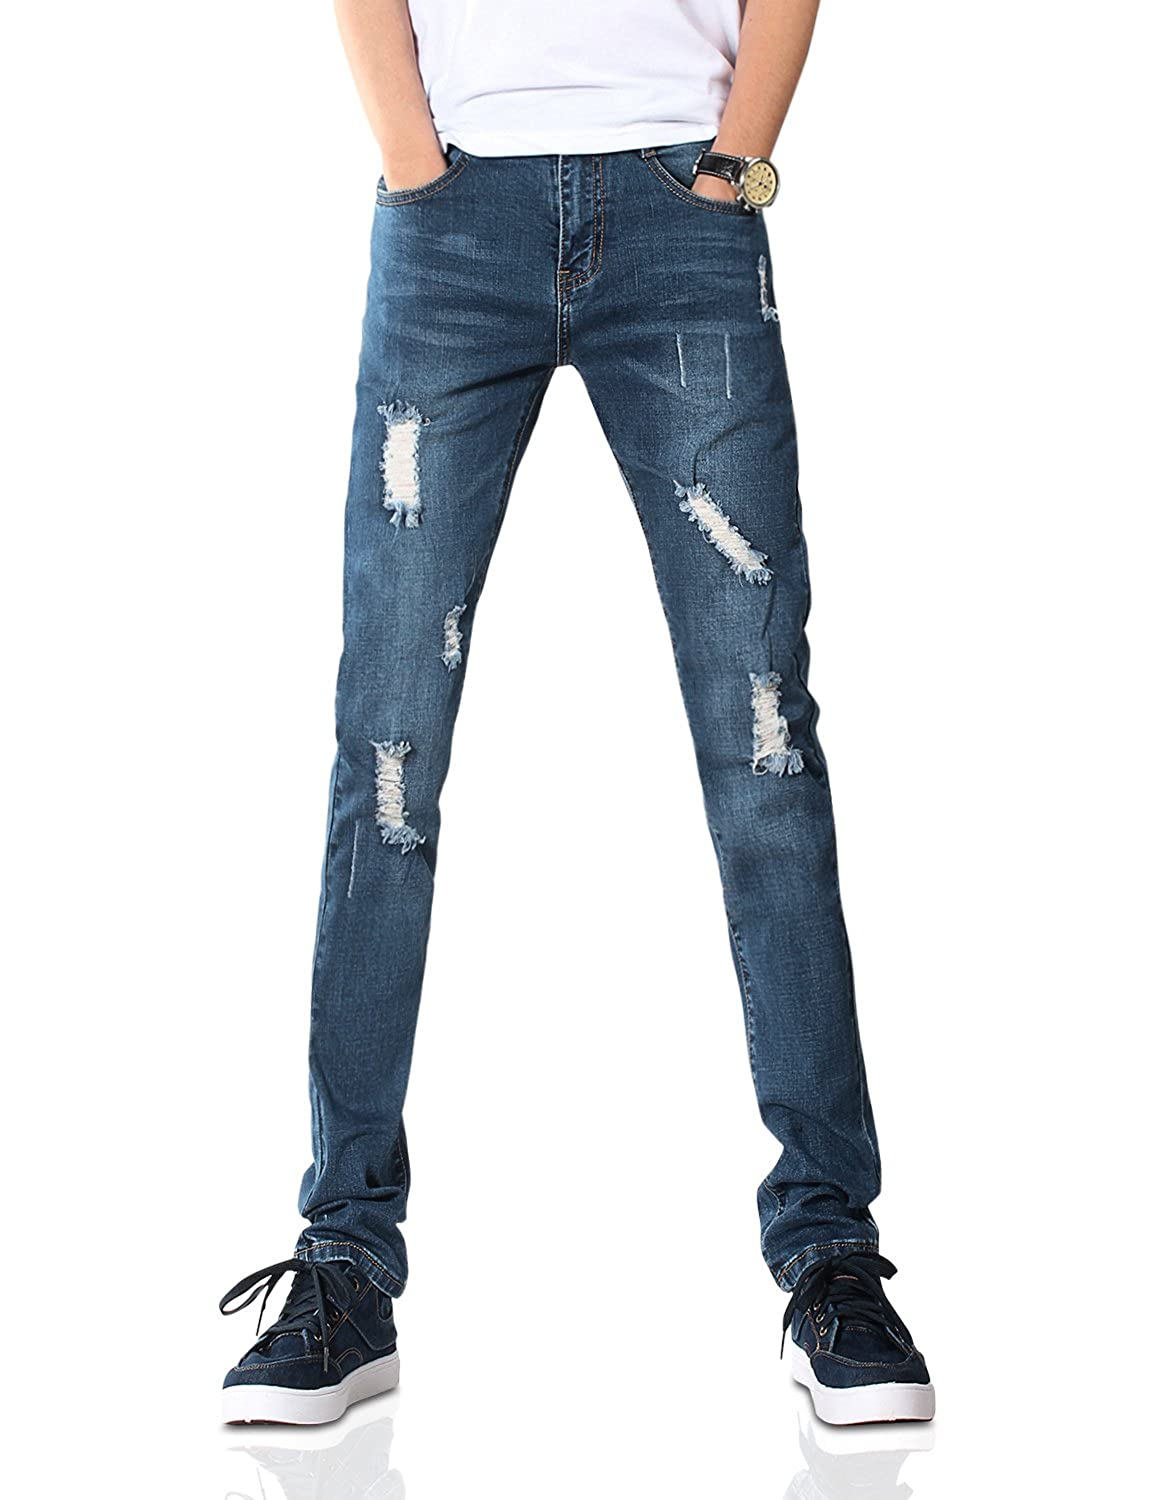 Demon& Hunter YOUTH Series Men's Skinny Slim Jeans DH8008